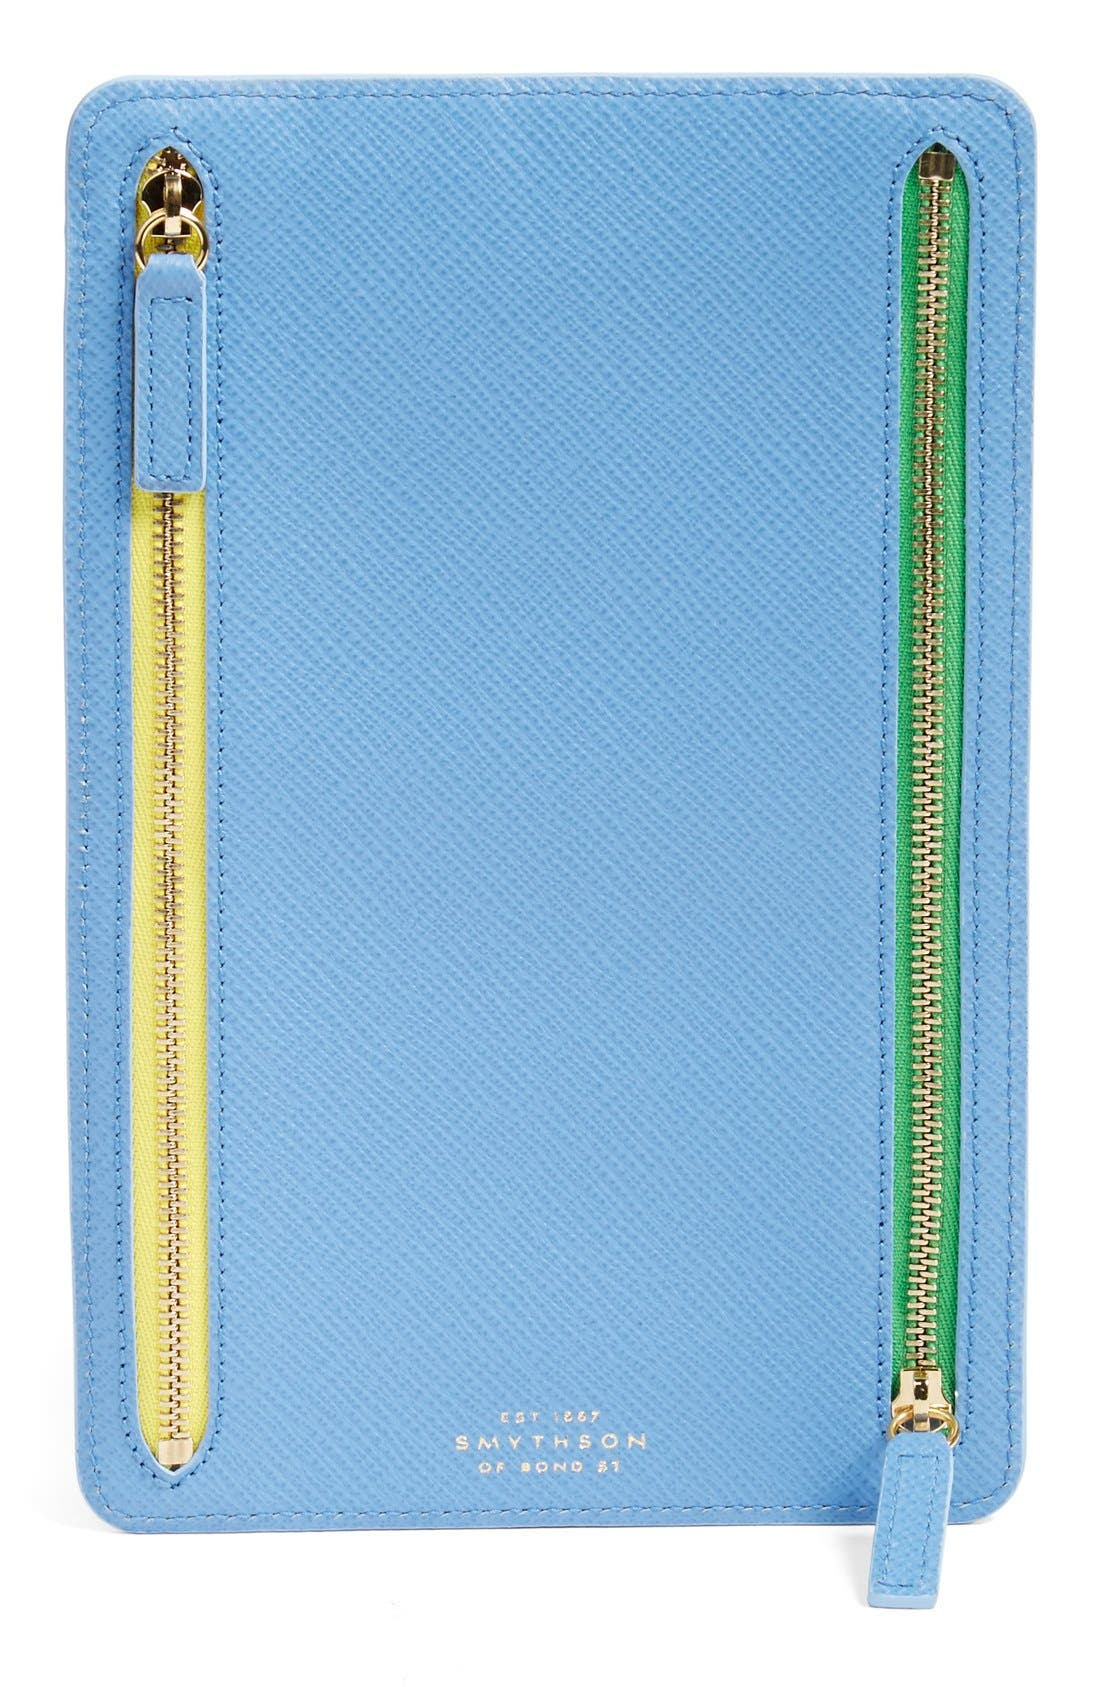 'Panama' Zip Currency Case,                             Main thumbnail 1, color,                             NILE BLUE